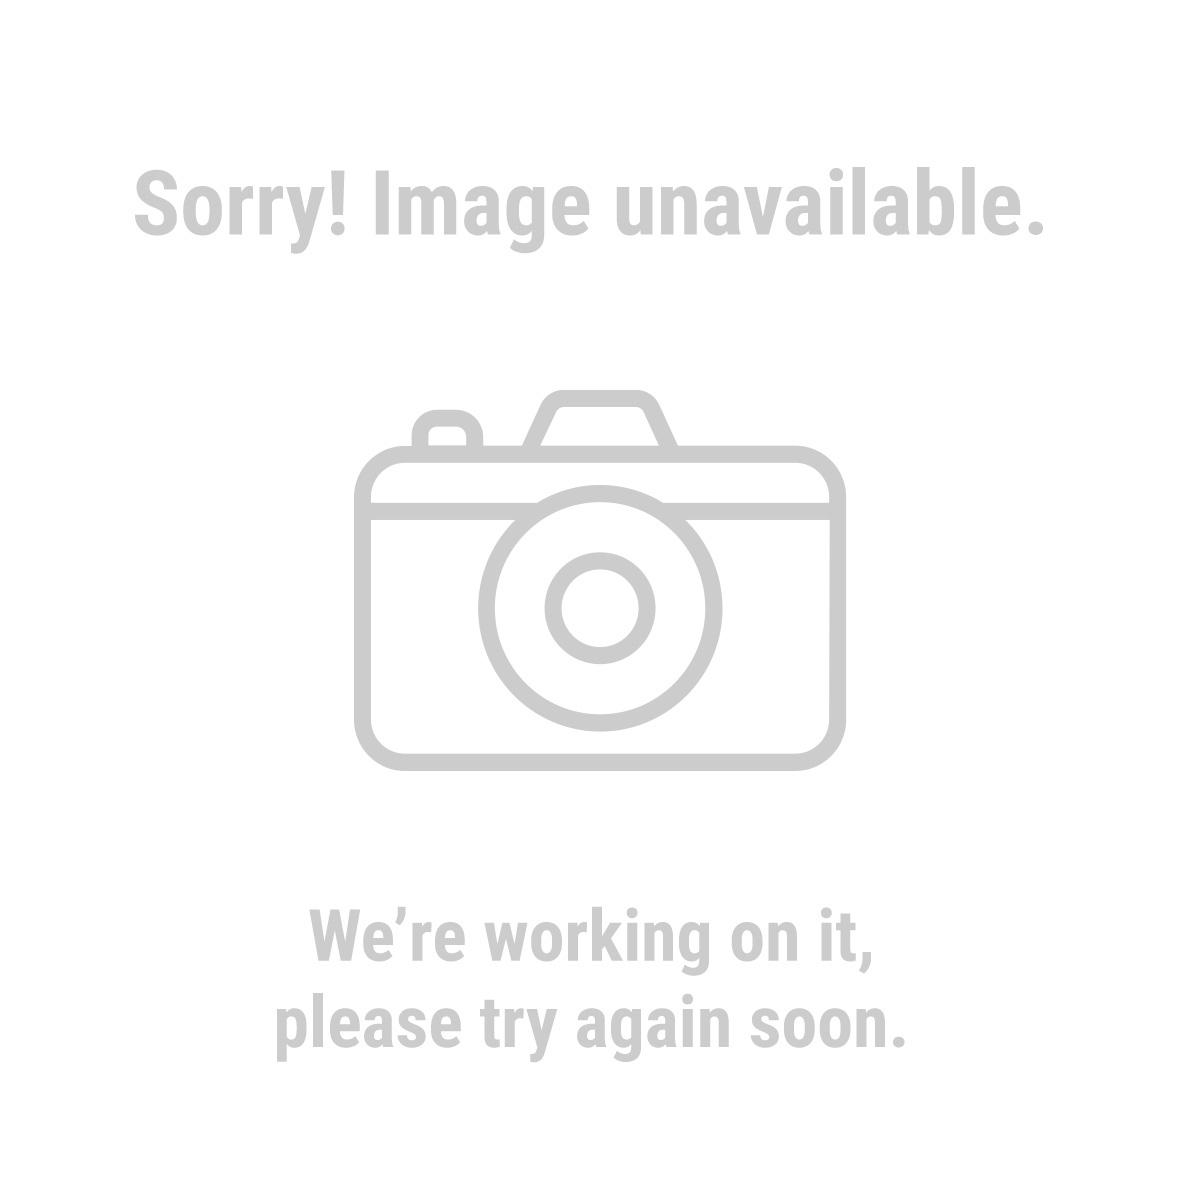 HFT® 61571 1470 ft. x 18 in. Roll High Performance Stretch Wrap